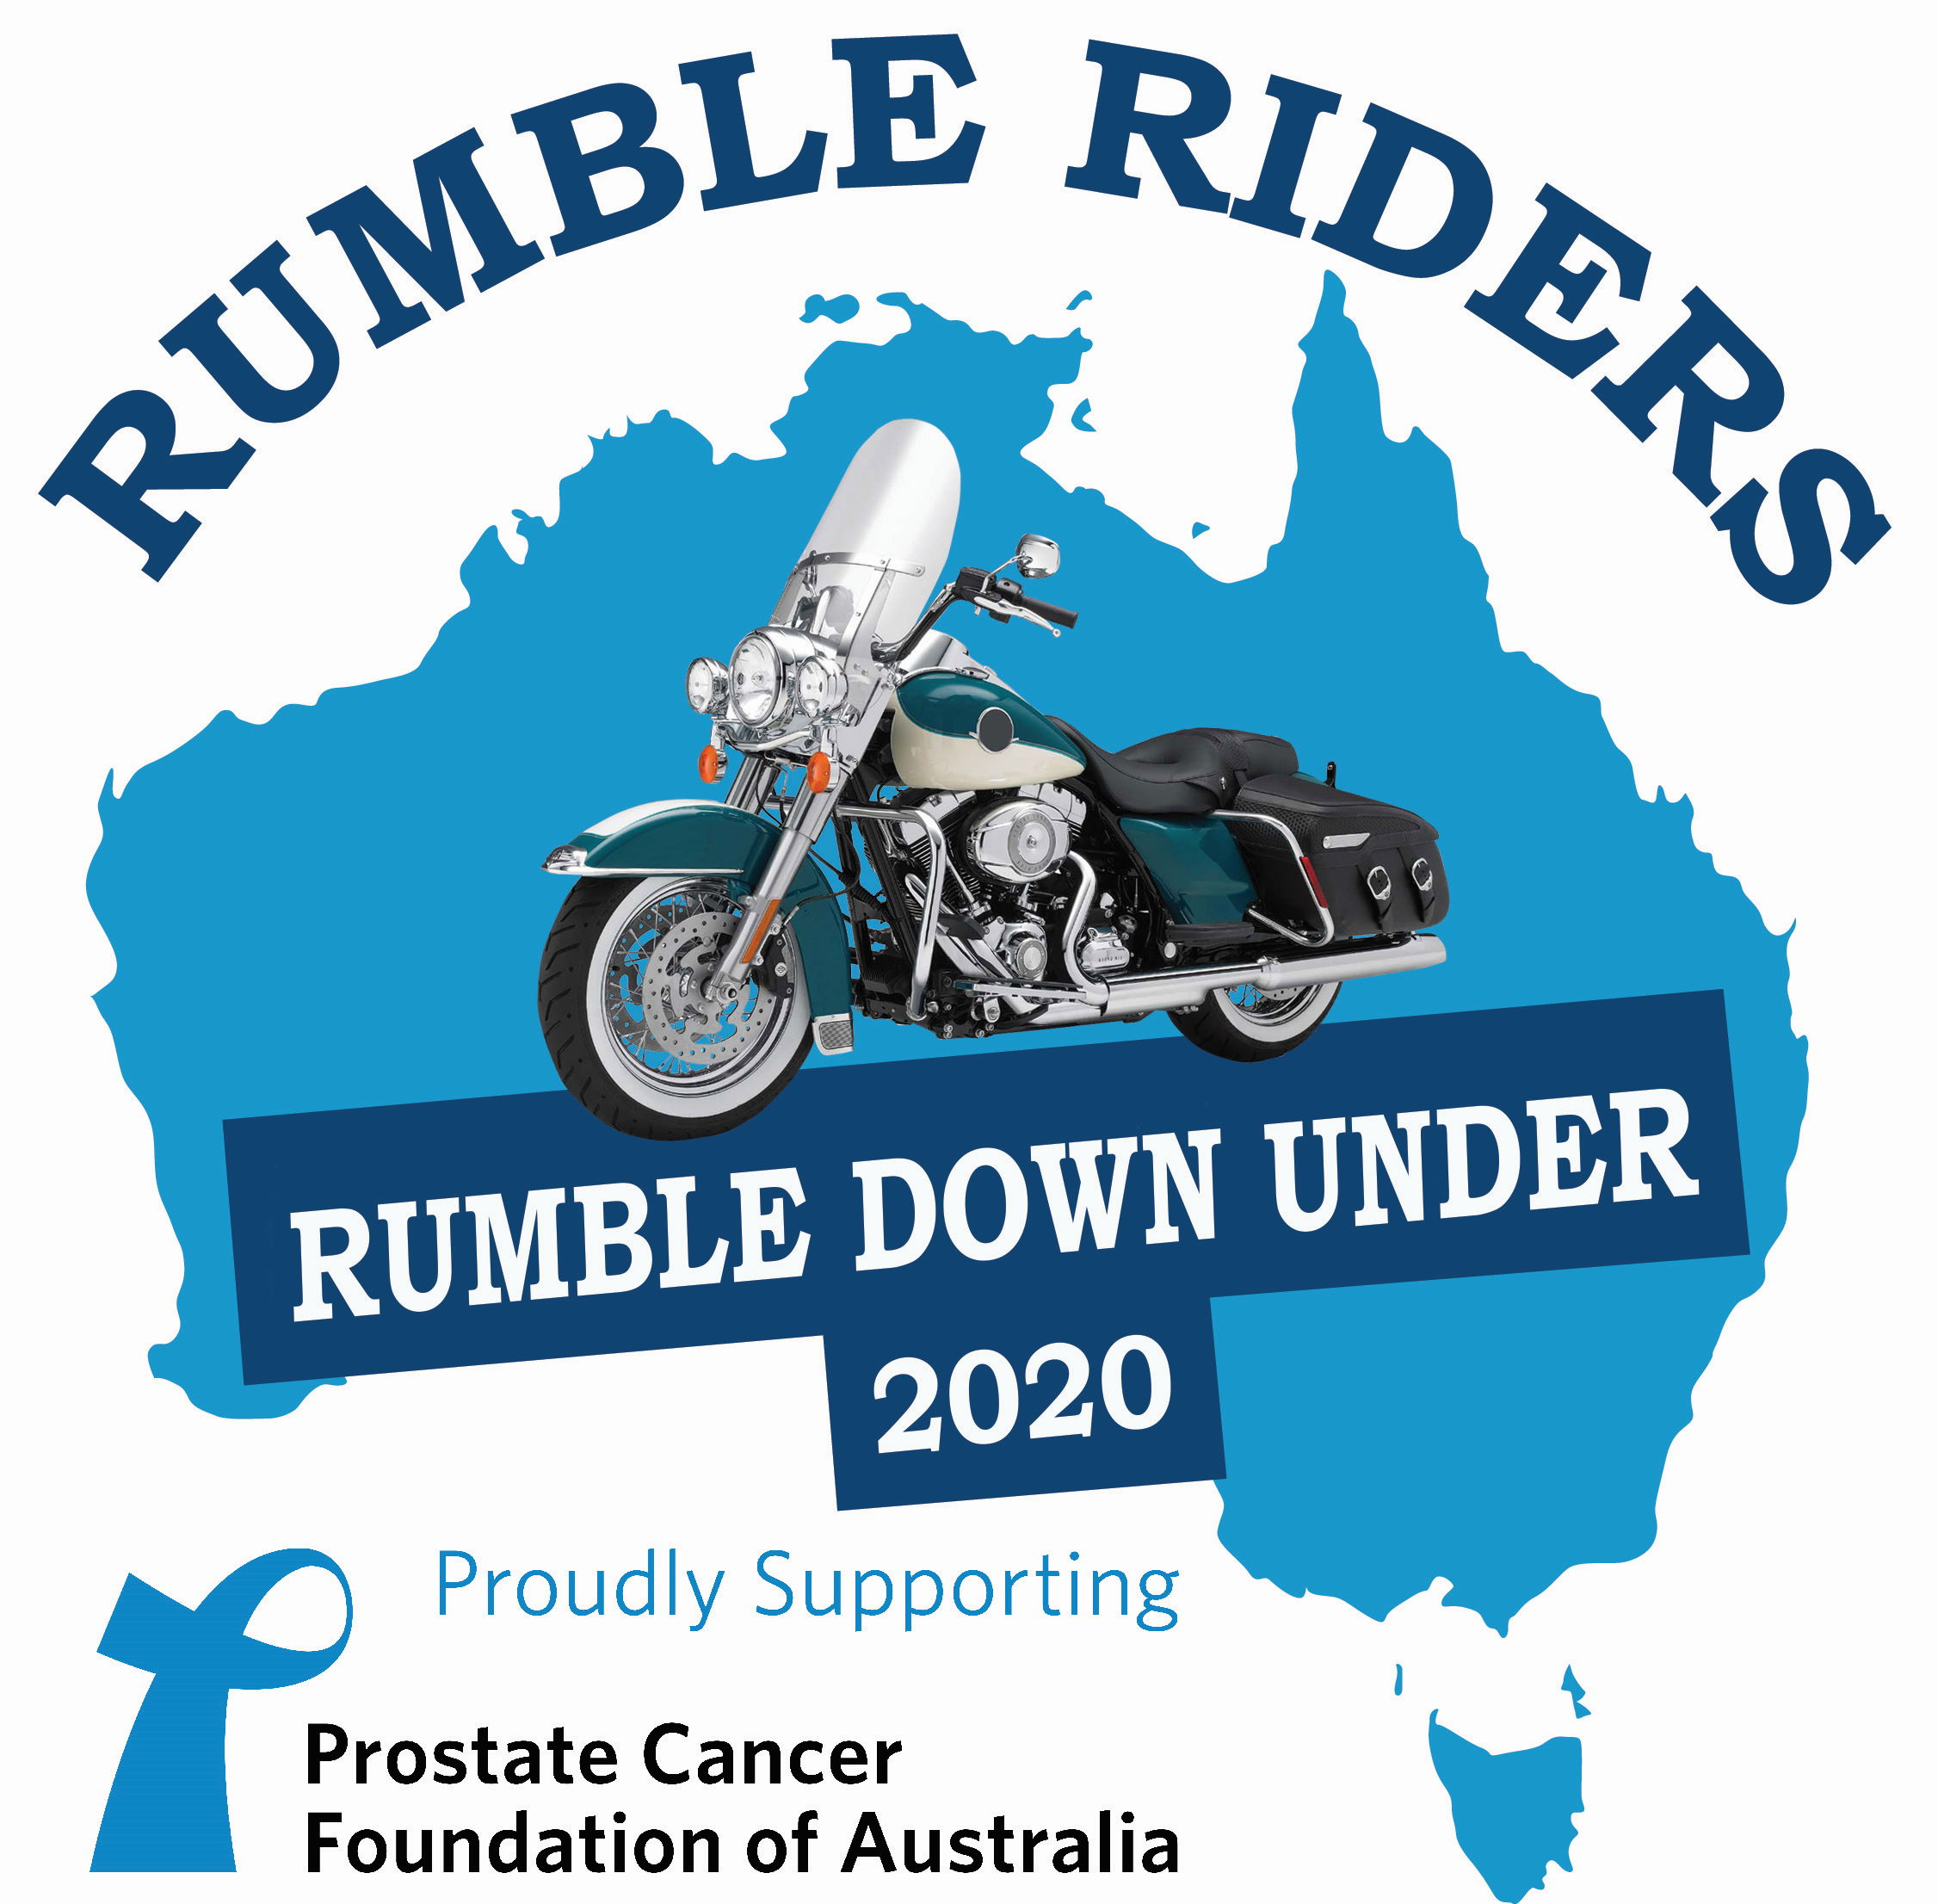 Rumble Downunder 2020